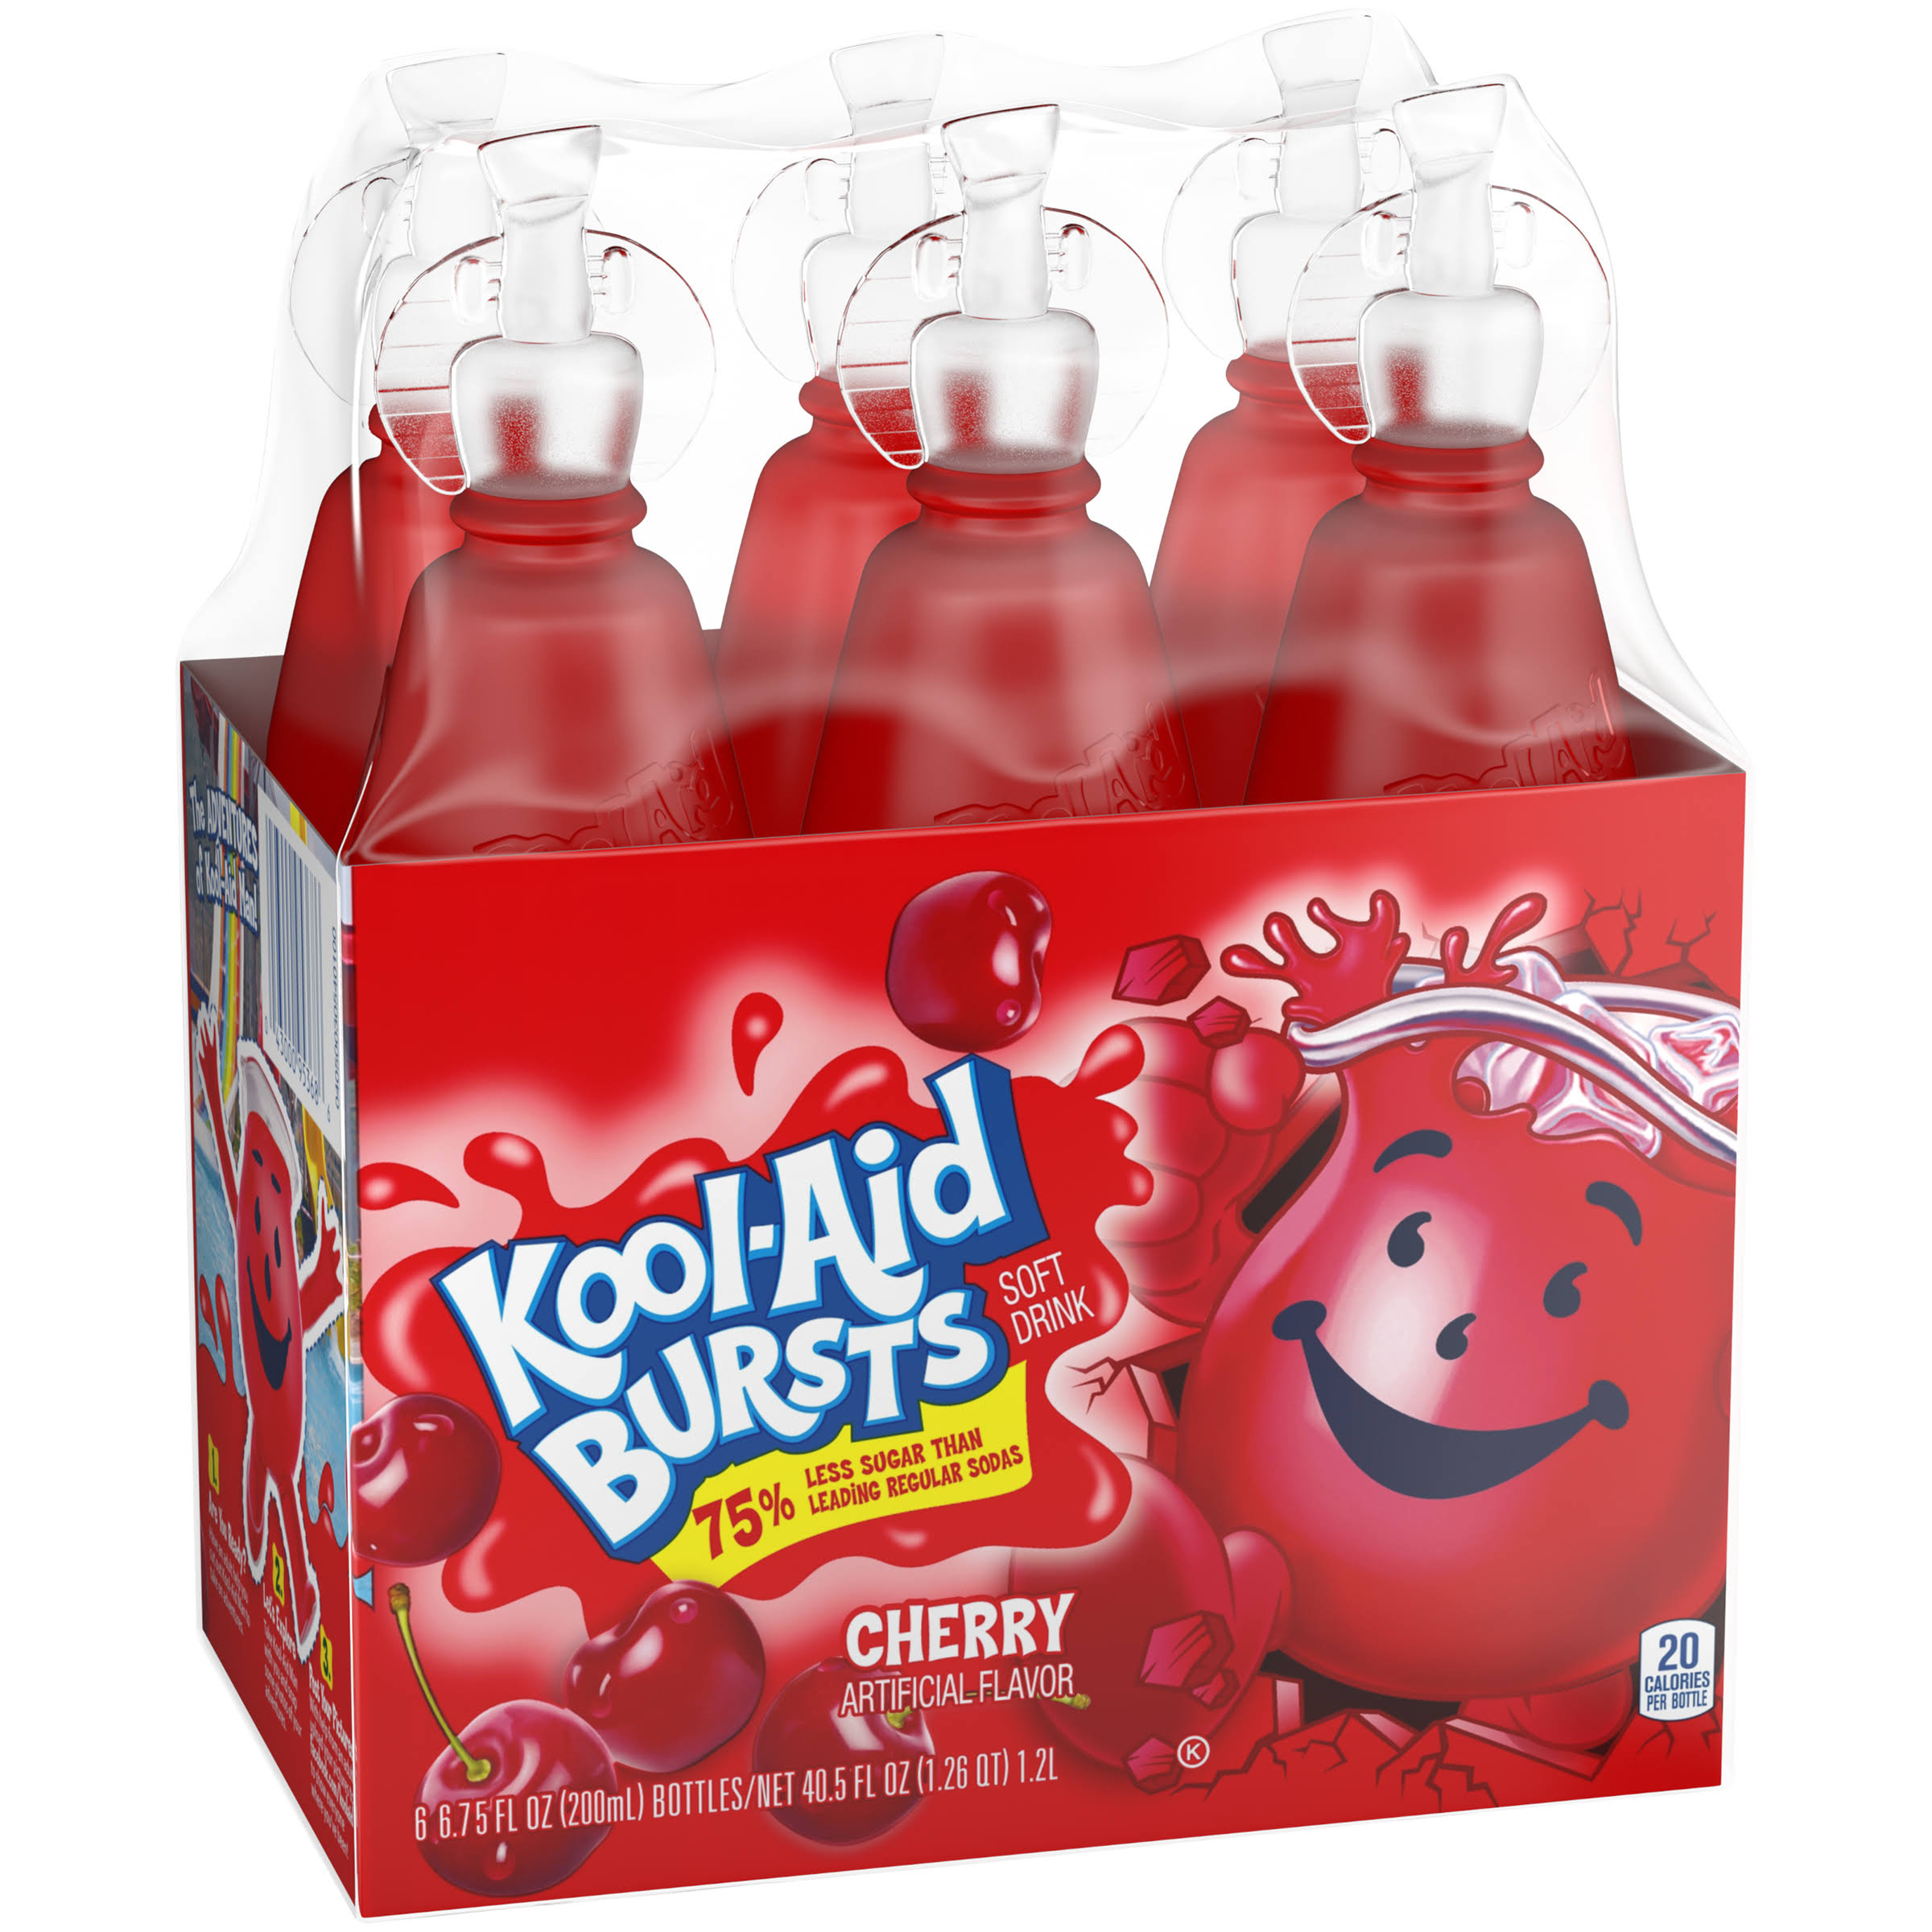 Kool-Aid Bursts Soft Drink - Cherry, 6.75oz, 6ct